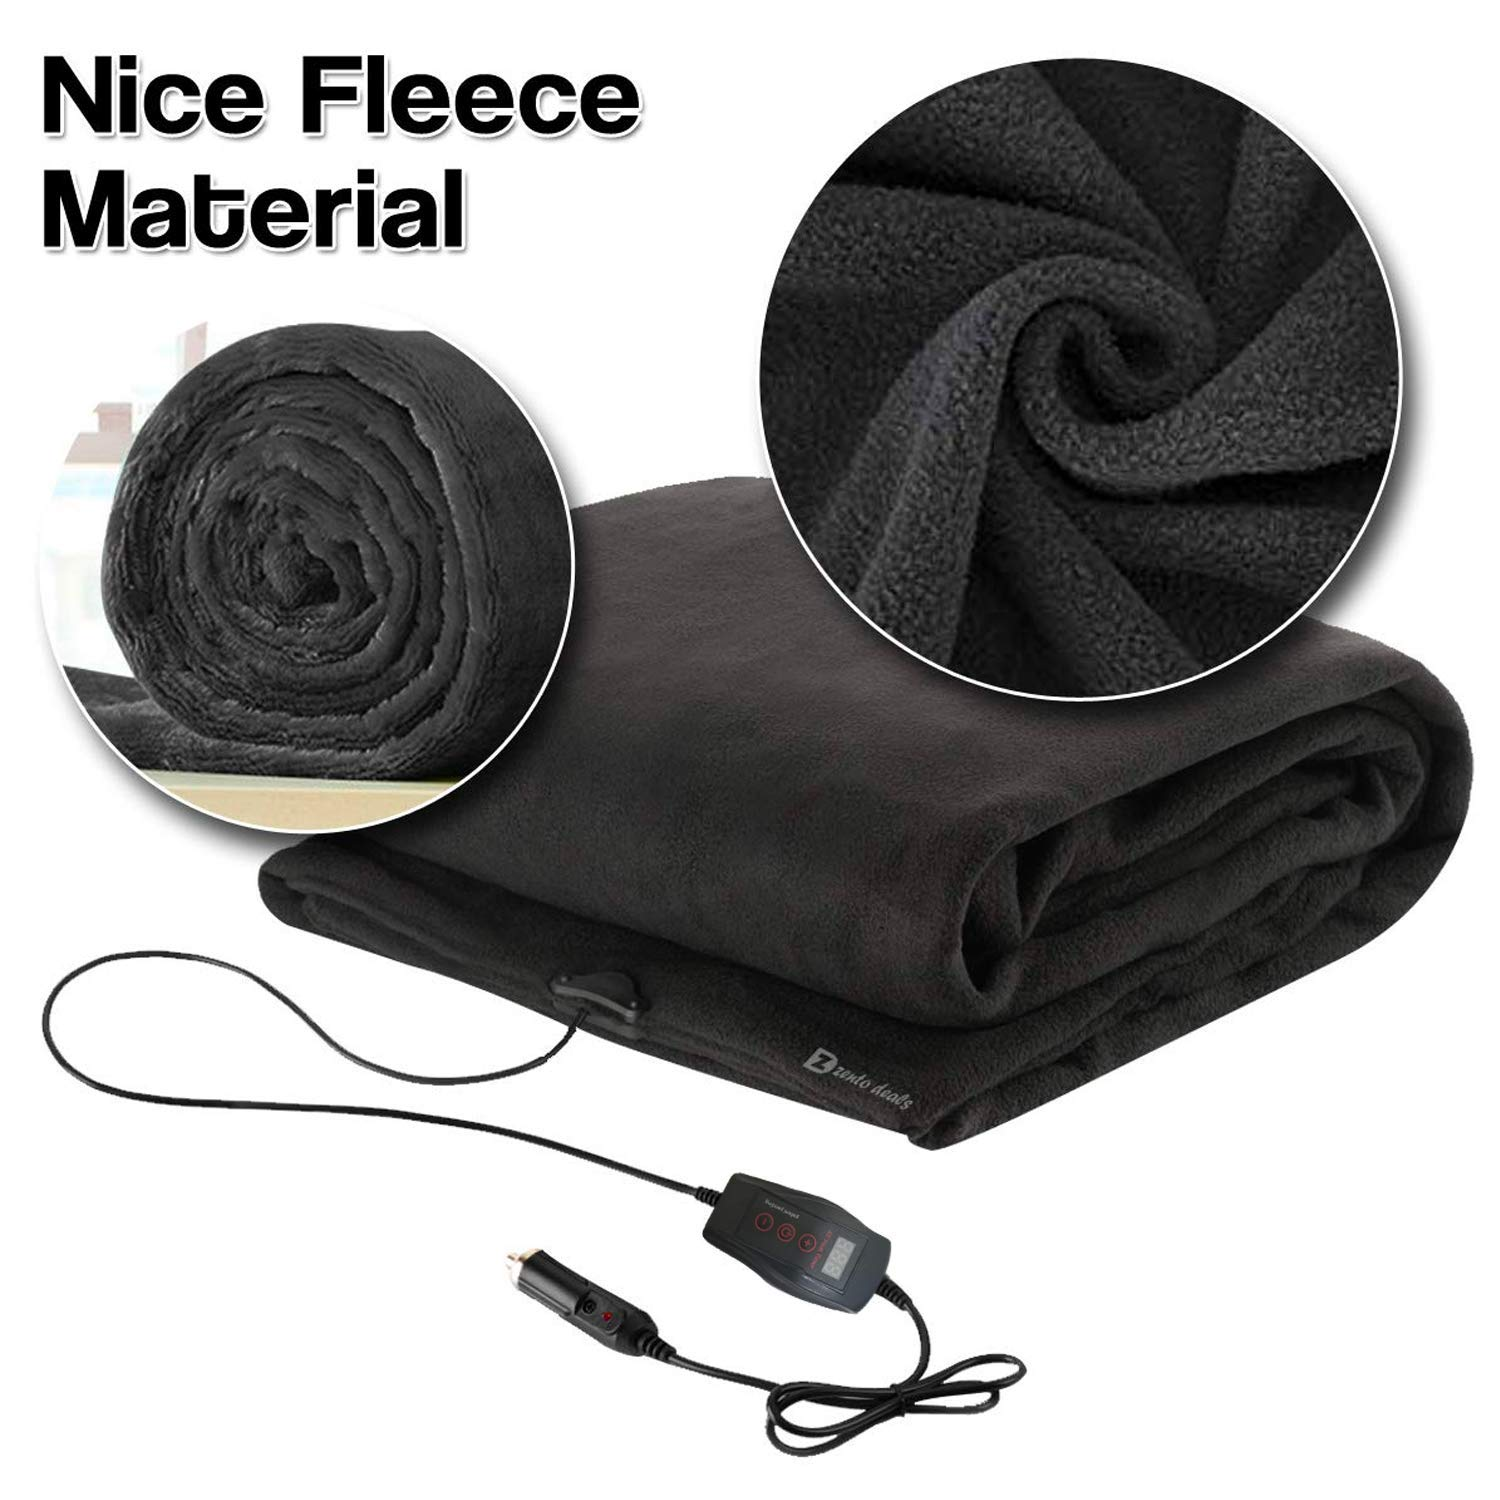 Zento Deals Pair of Heated Electric Polar Fleece Blanket 12V Cold Days and Night